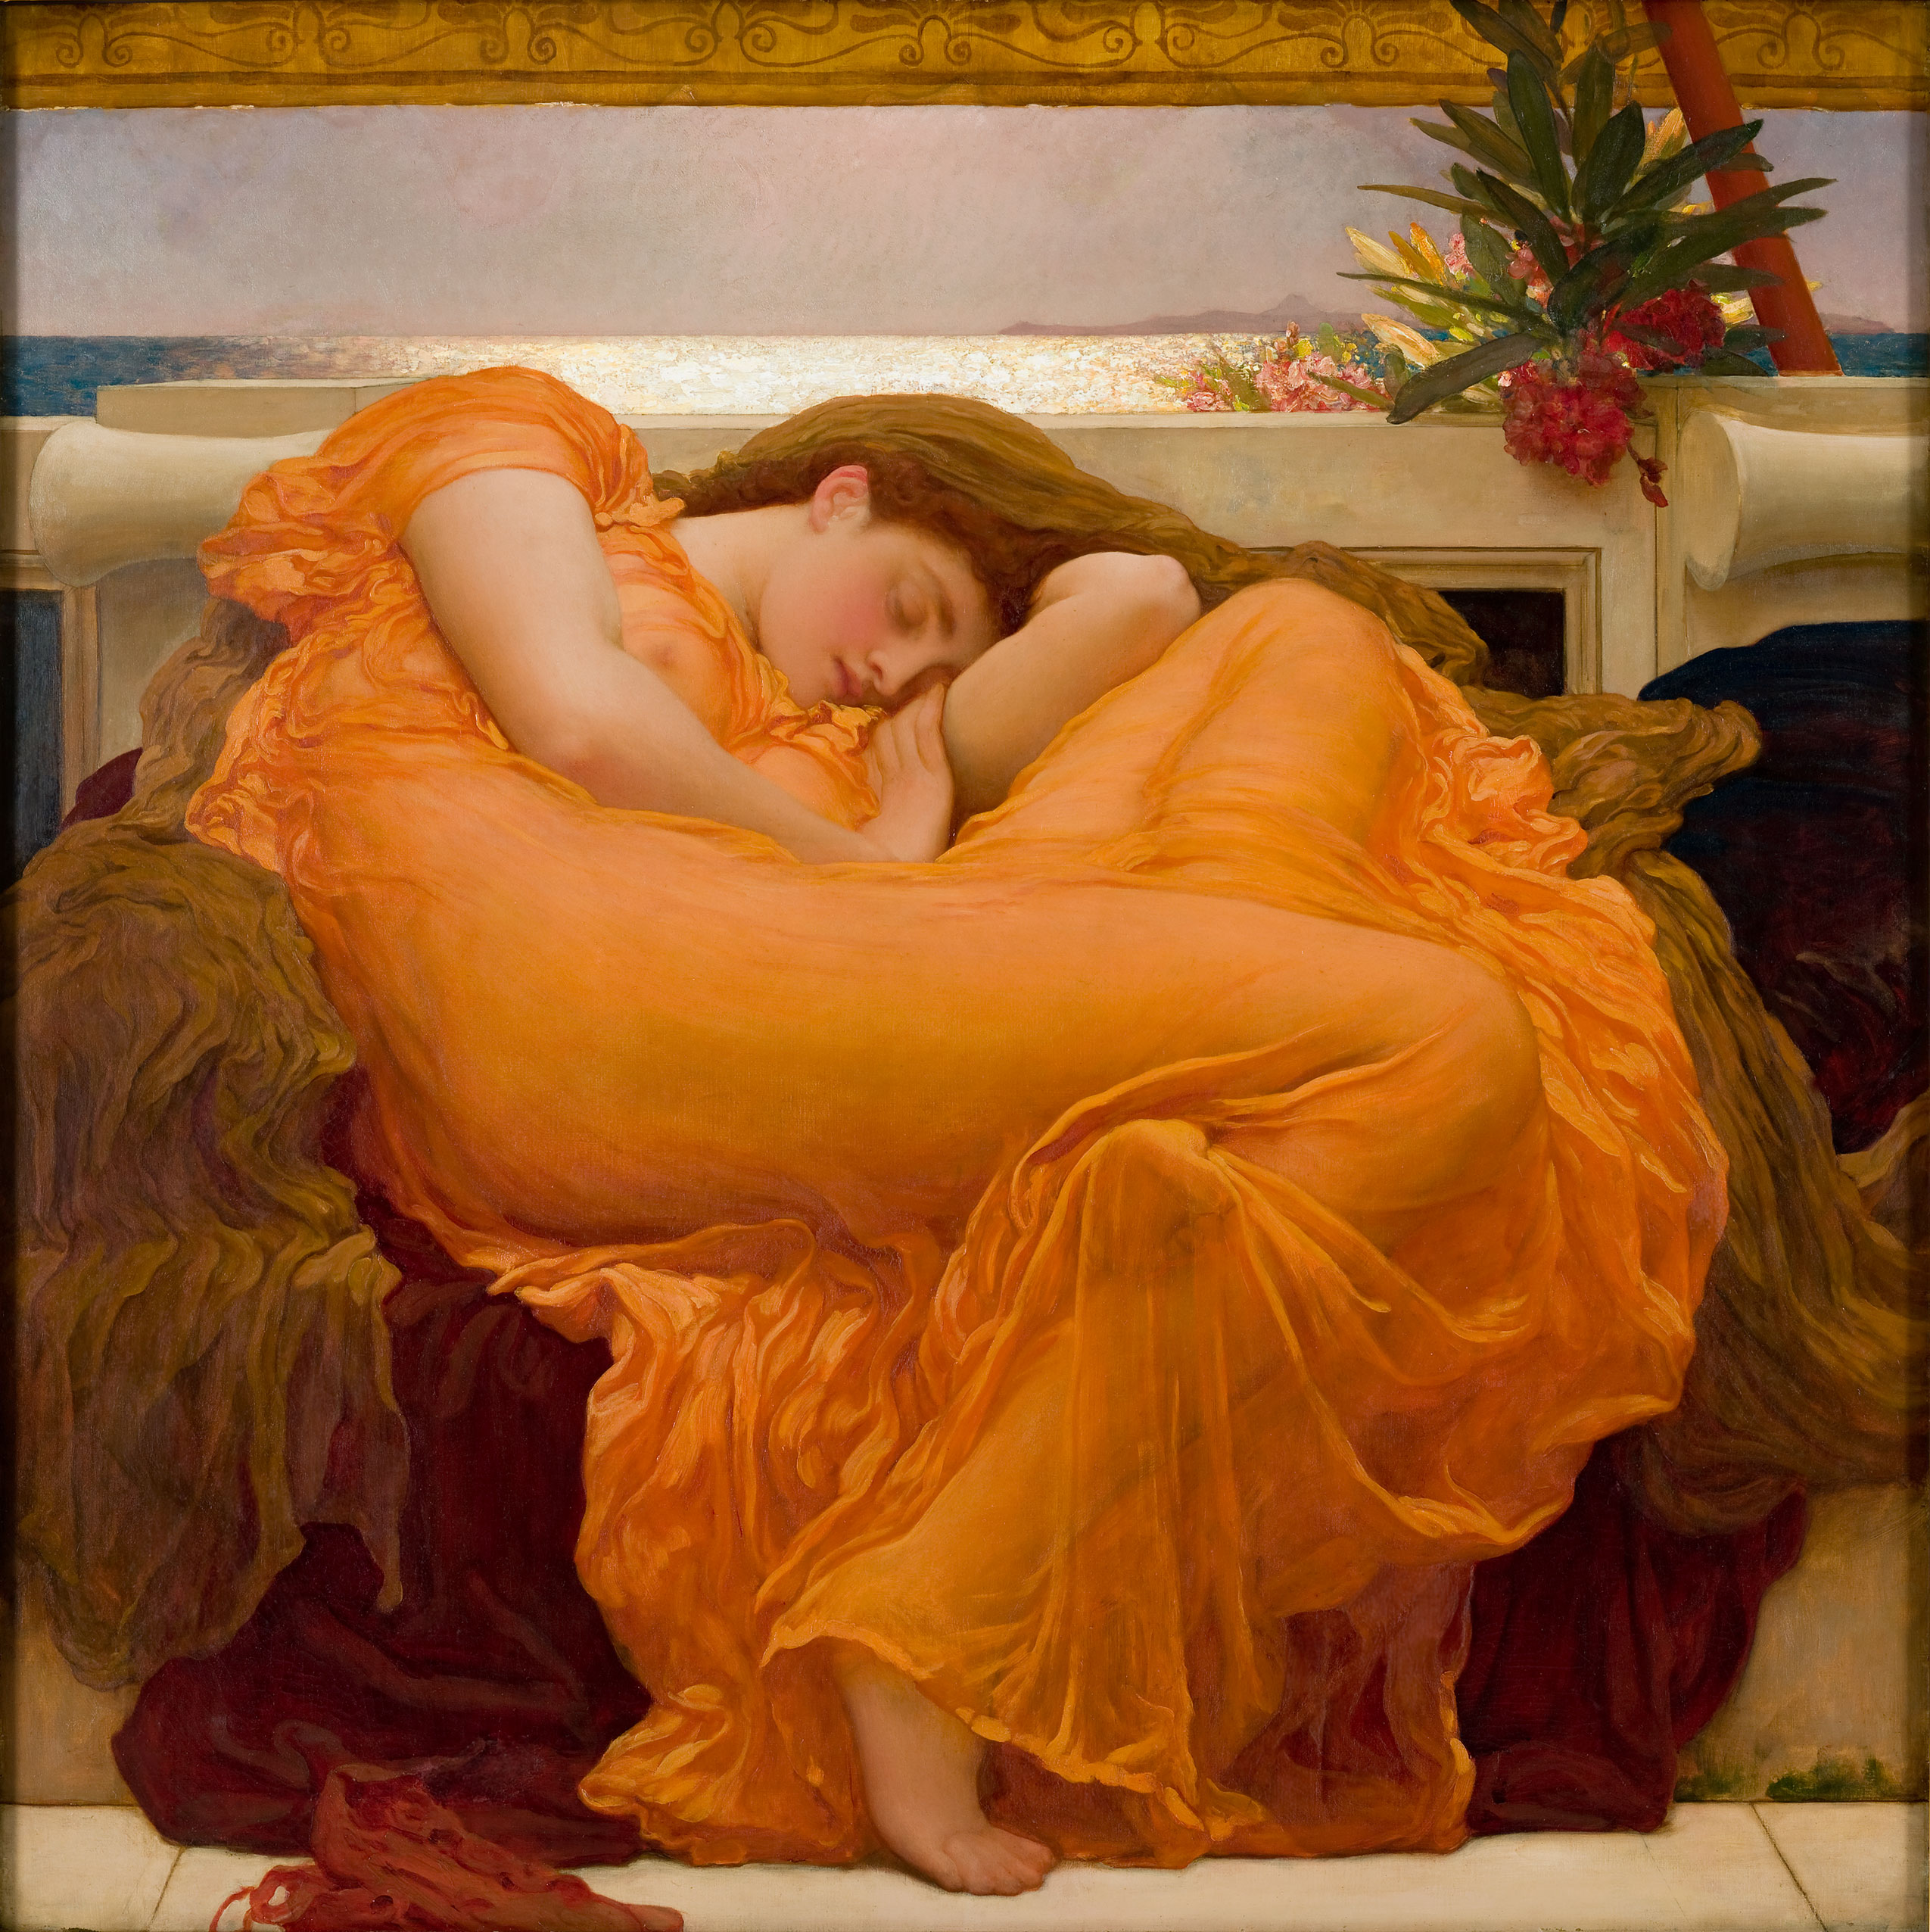 Flaming June – The One Painting That Struck Me Emotionally